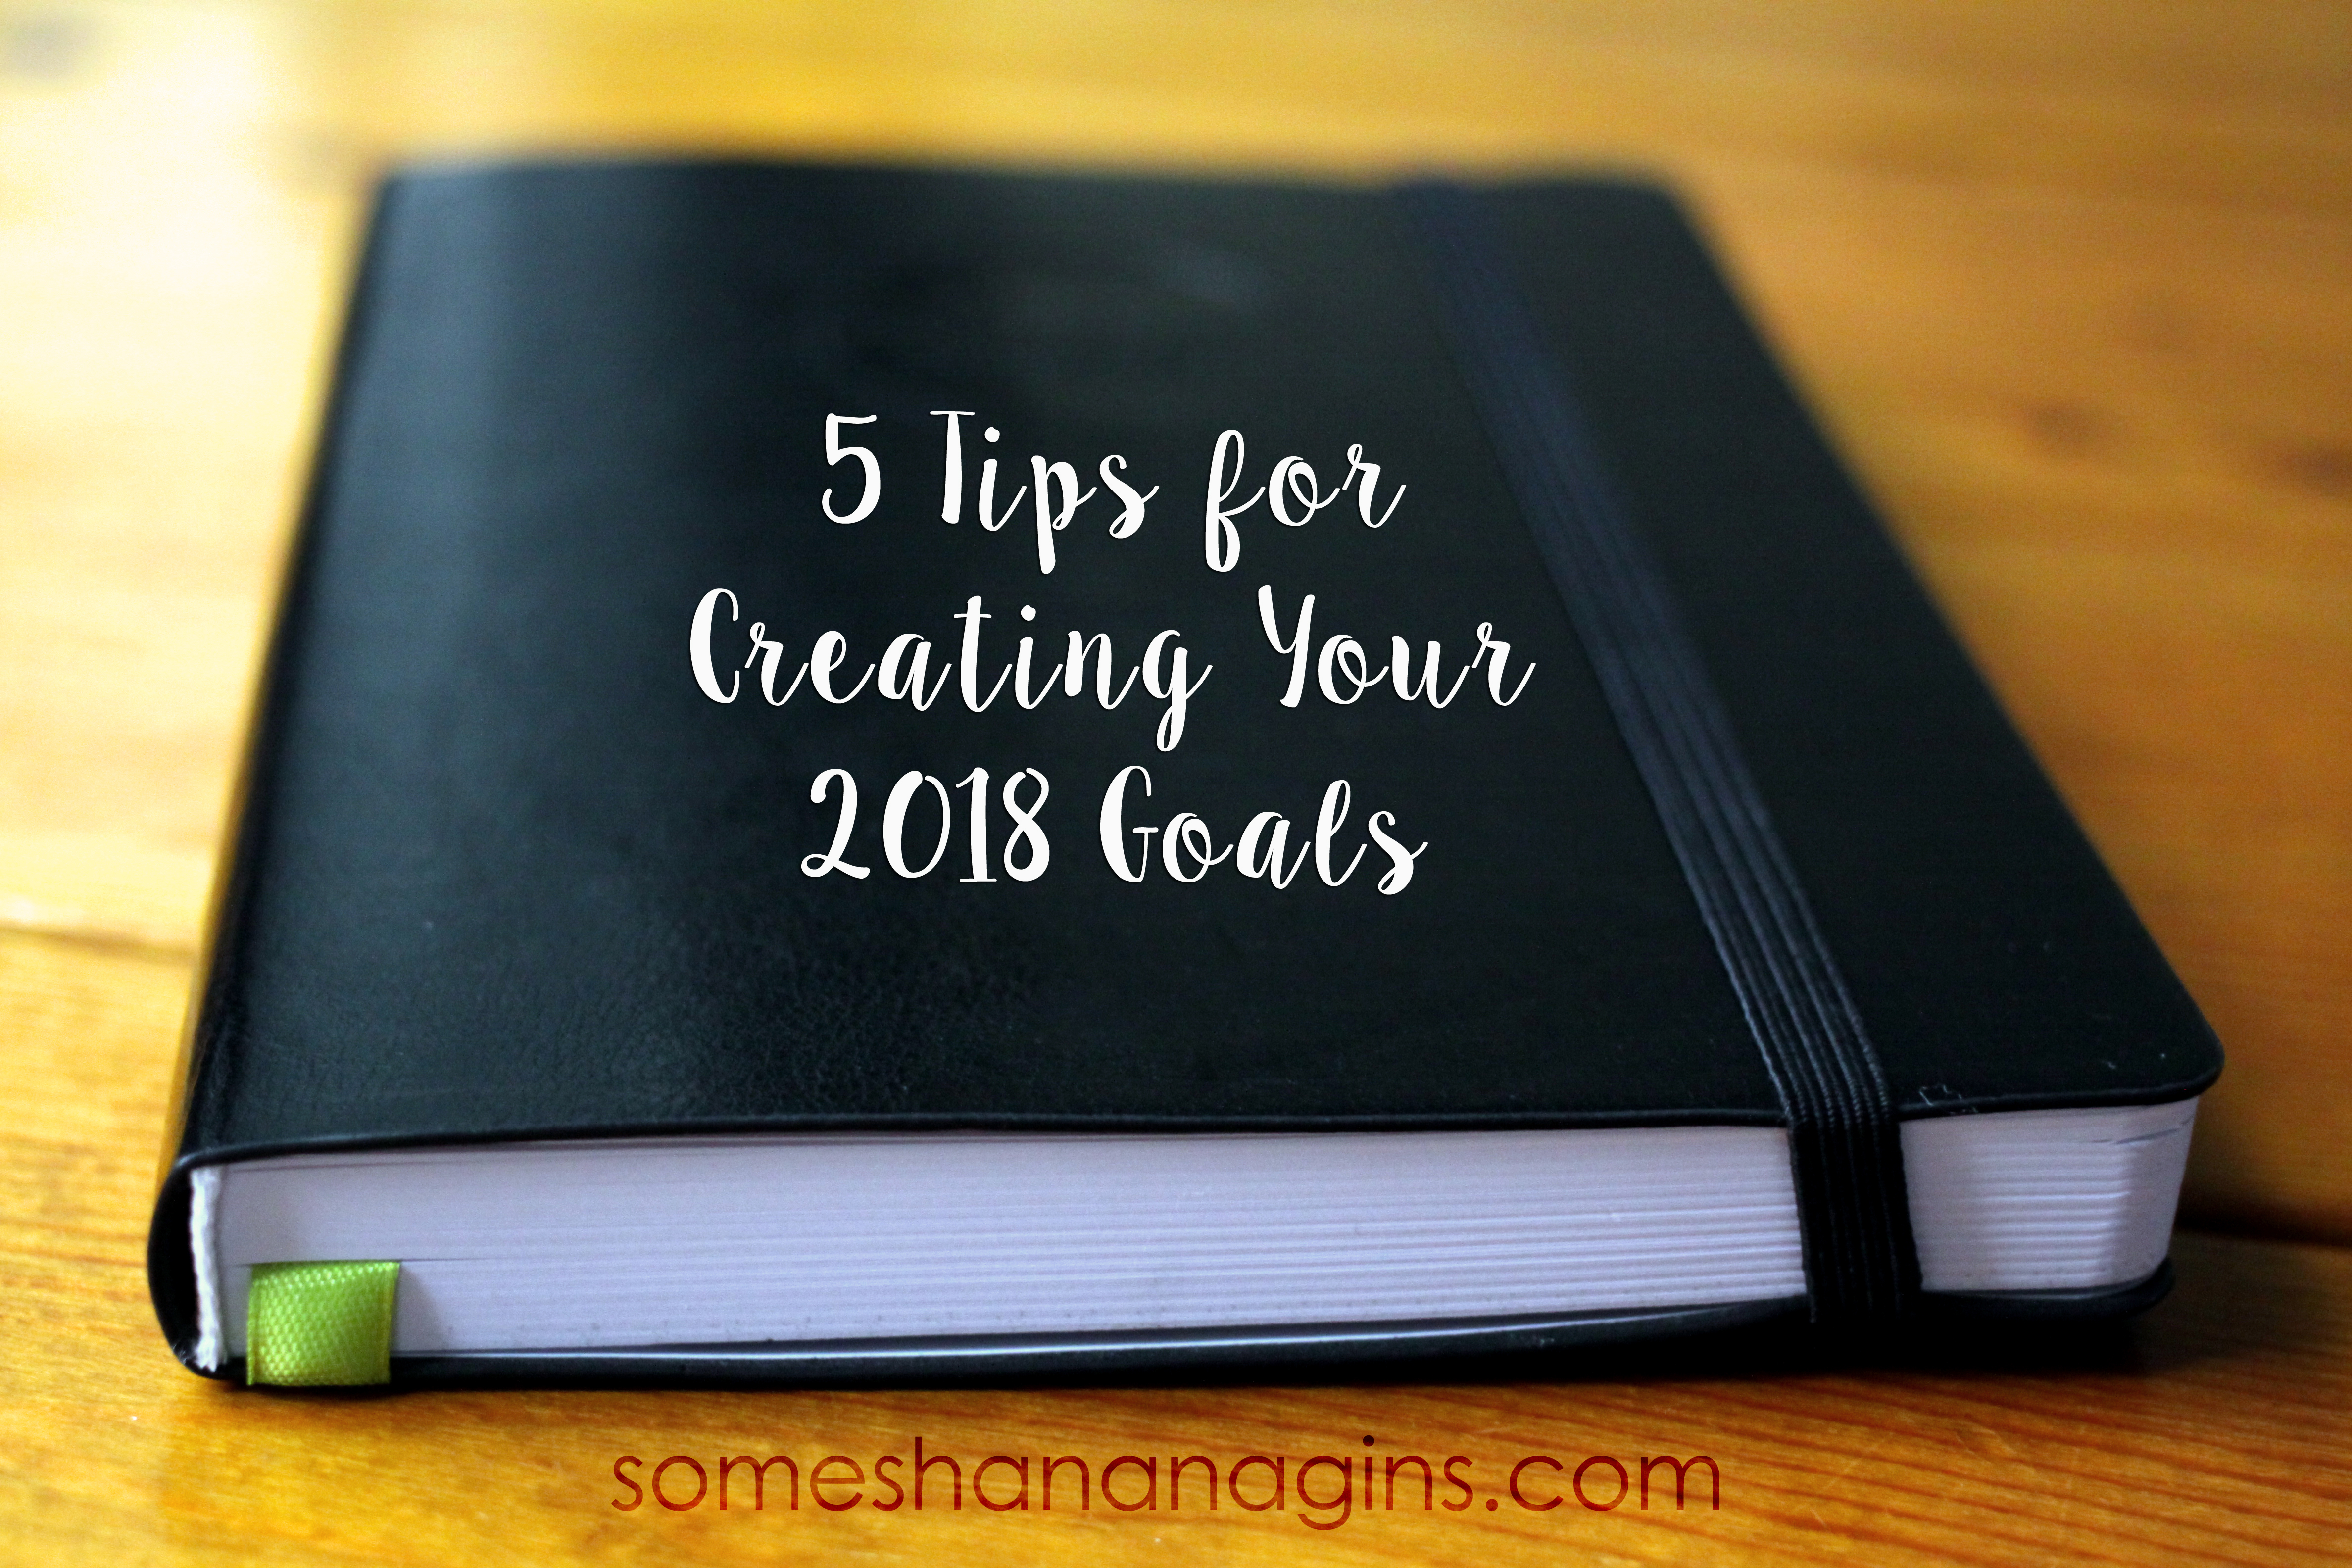 5 Tips for Creating Your 2018 Goals - Some Shananagins